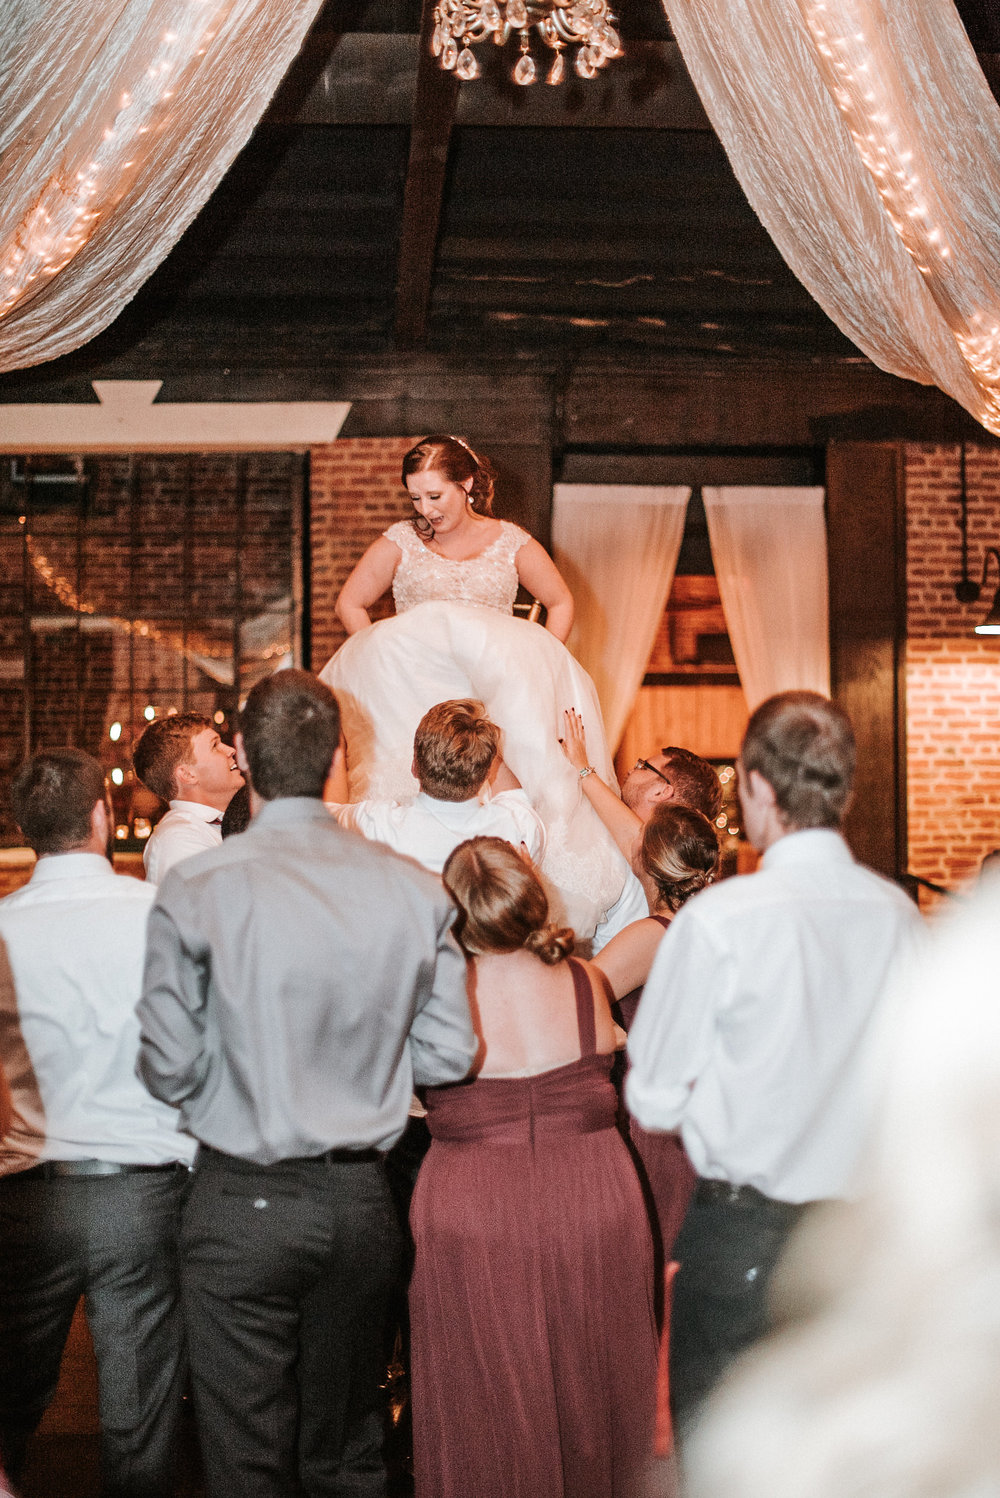 Guests lifting bride on chair